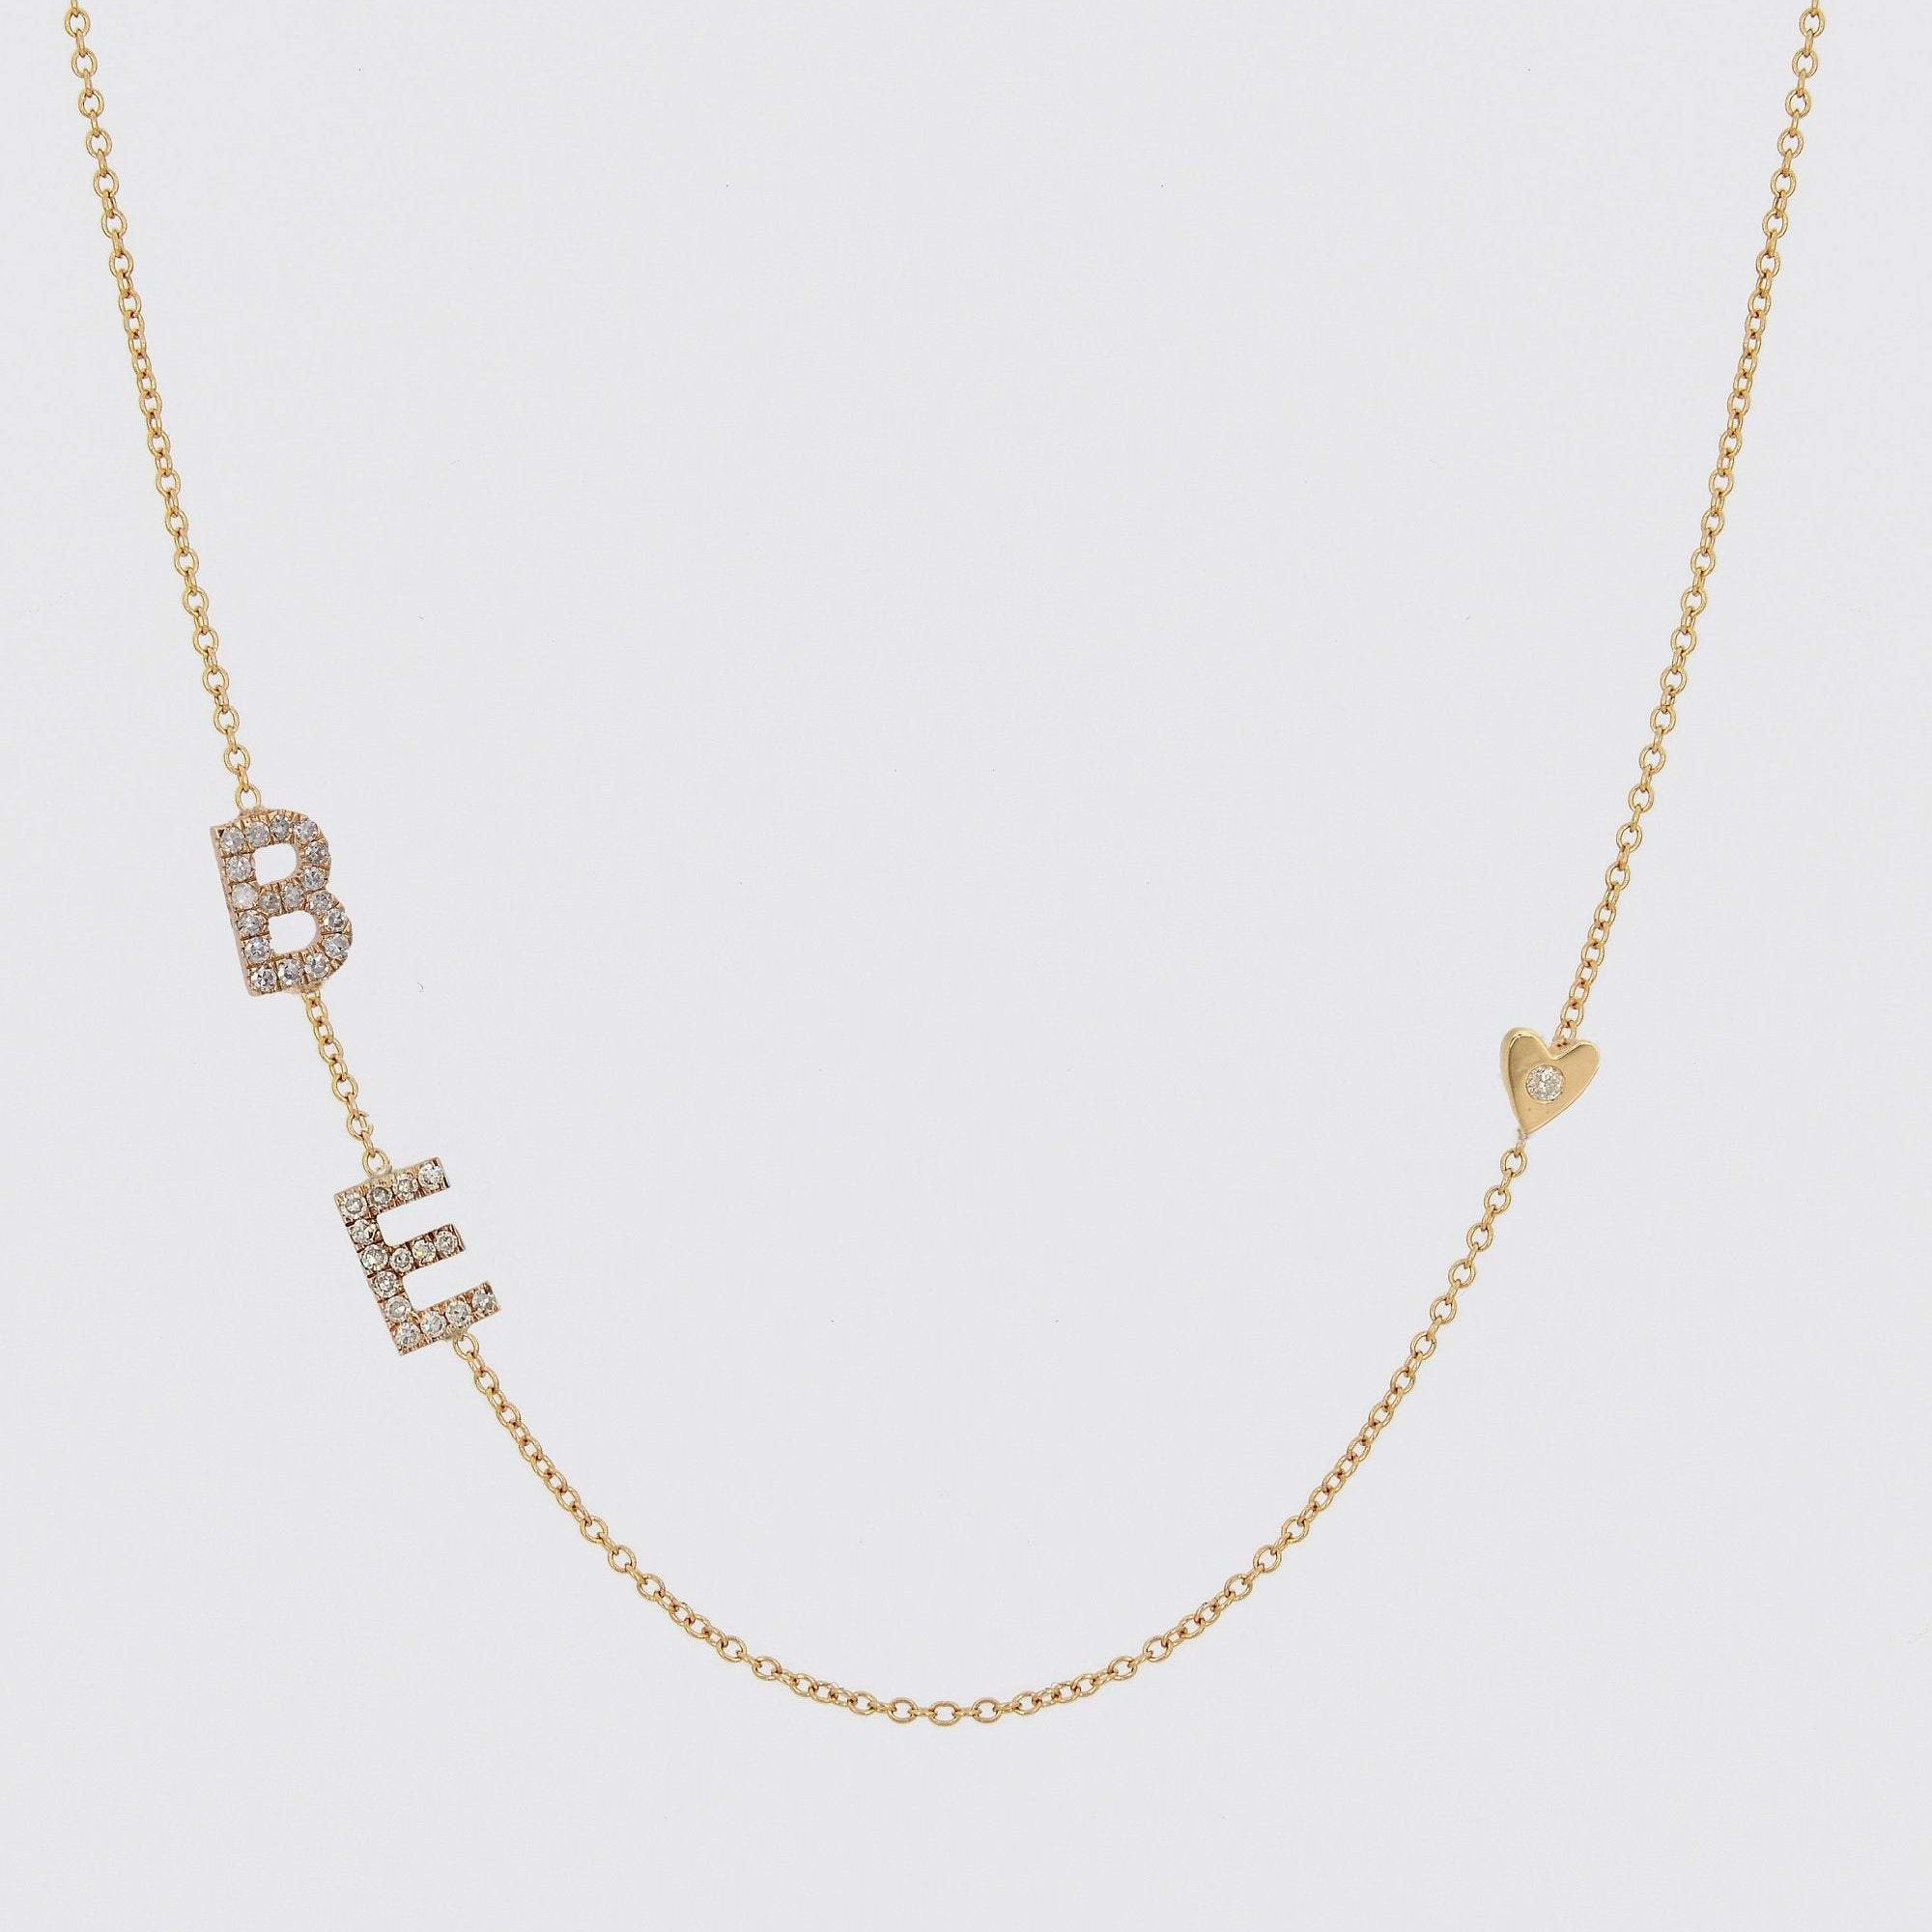 Sideways Initial Necklace with Heart and Diamonds, Alphabet Letter Necklace